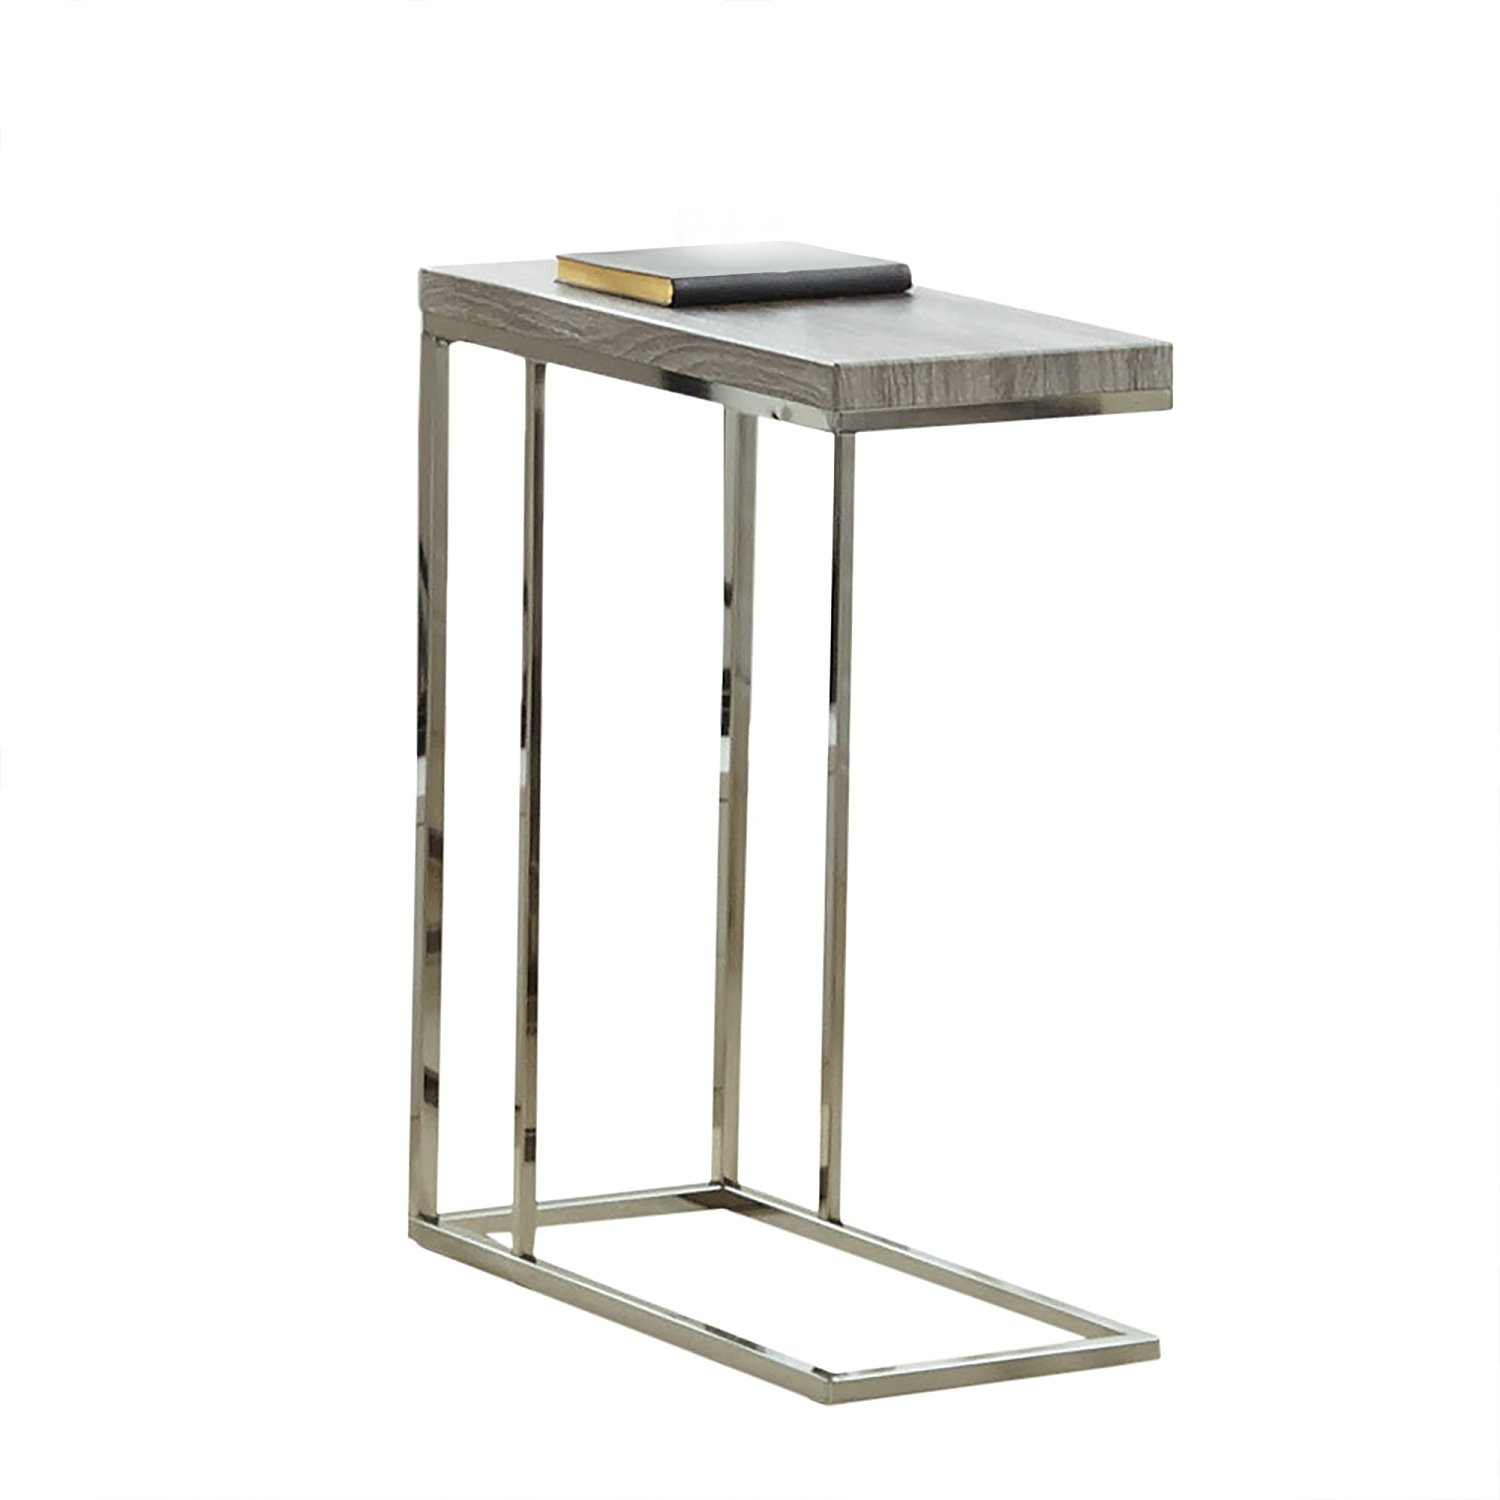 "Steve Silver Company Lucia Chairside End Table, 10"" x 18"" x 25"", Grey"